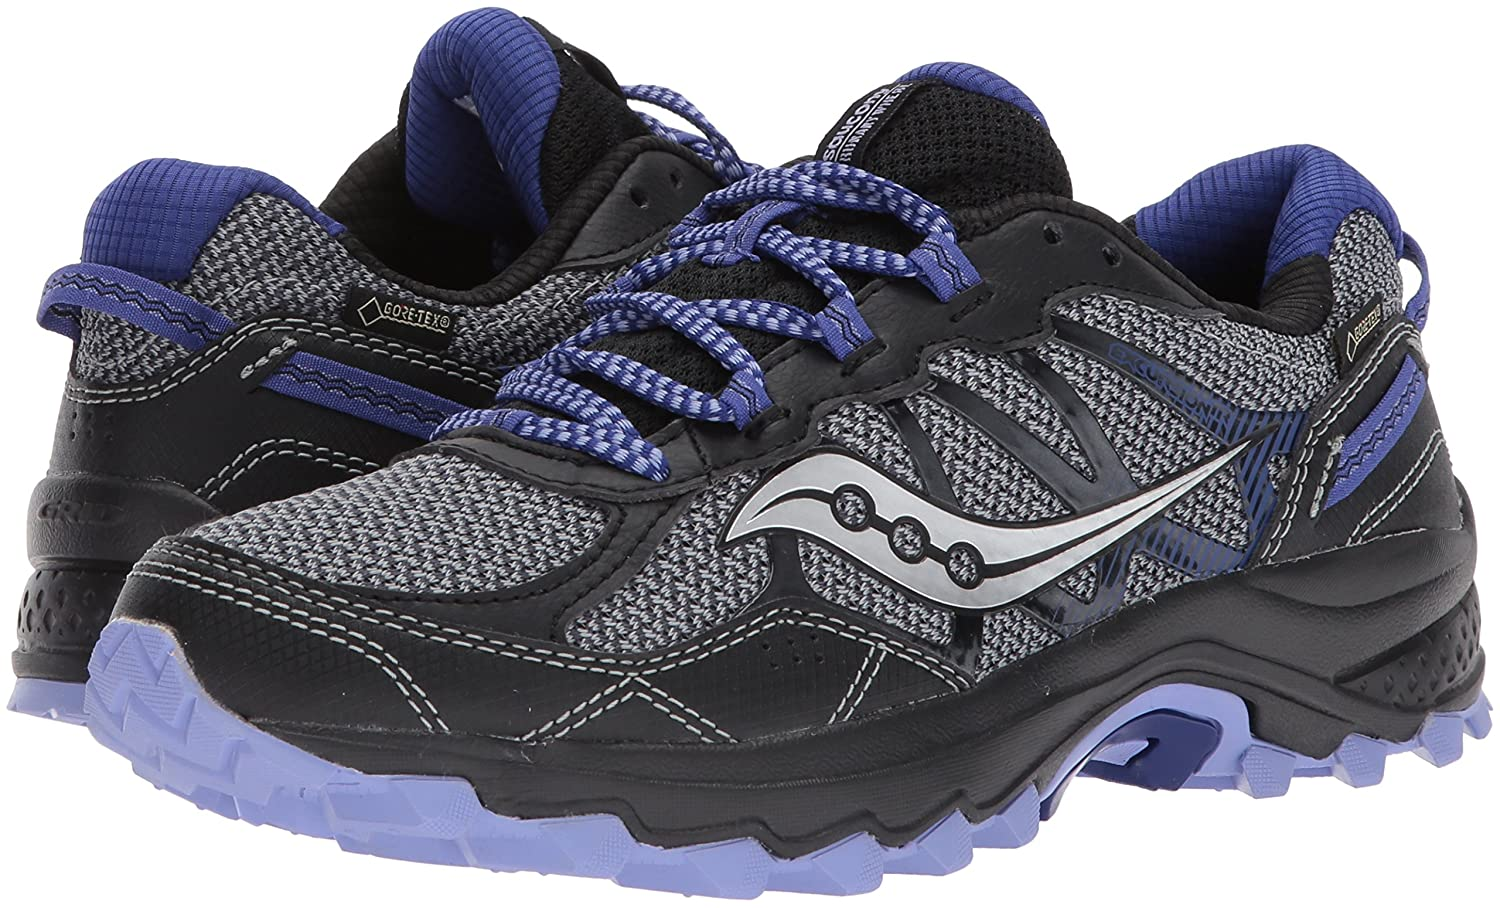 Saucony Women's Excursion Tr11 GTX Running Shoe B01N4GQR7S 11.5 B(M) US|Grey Purple